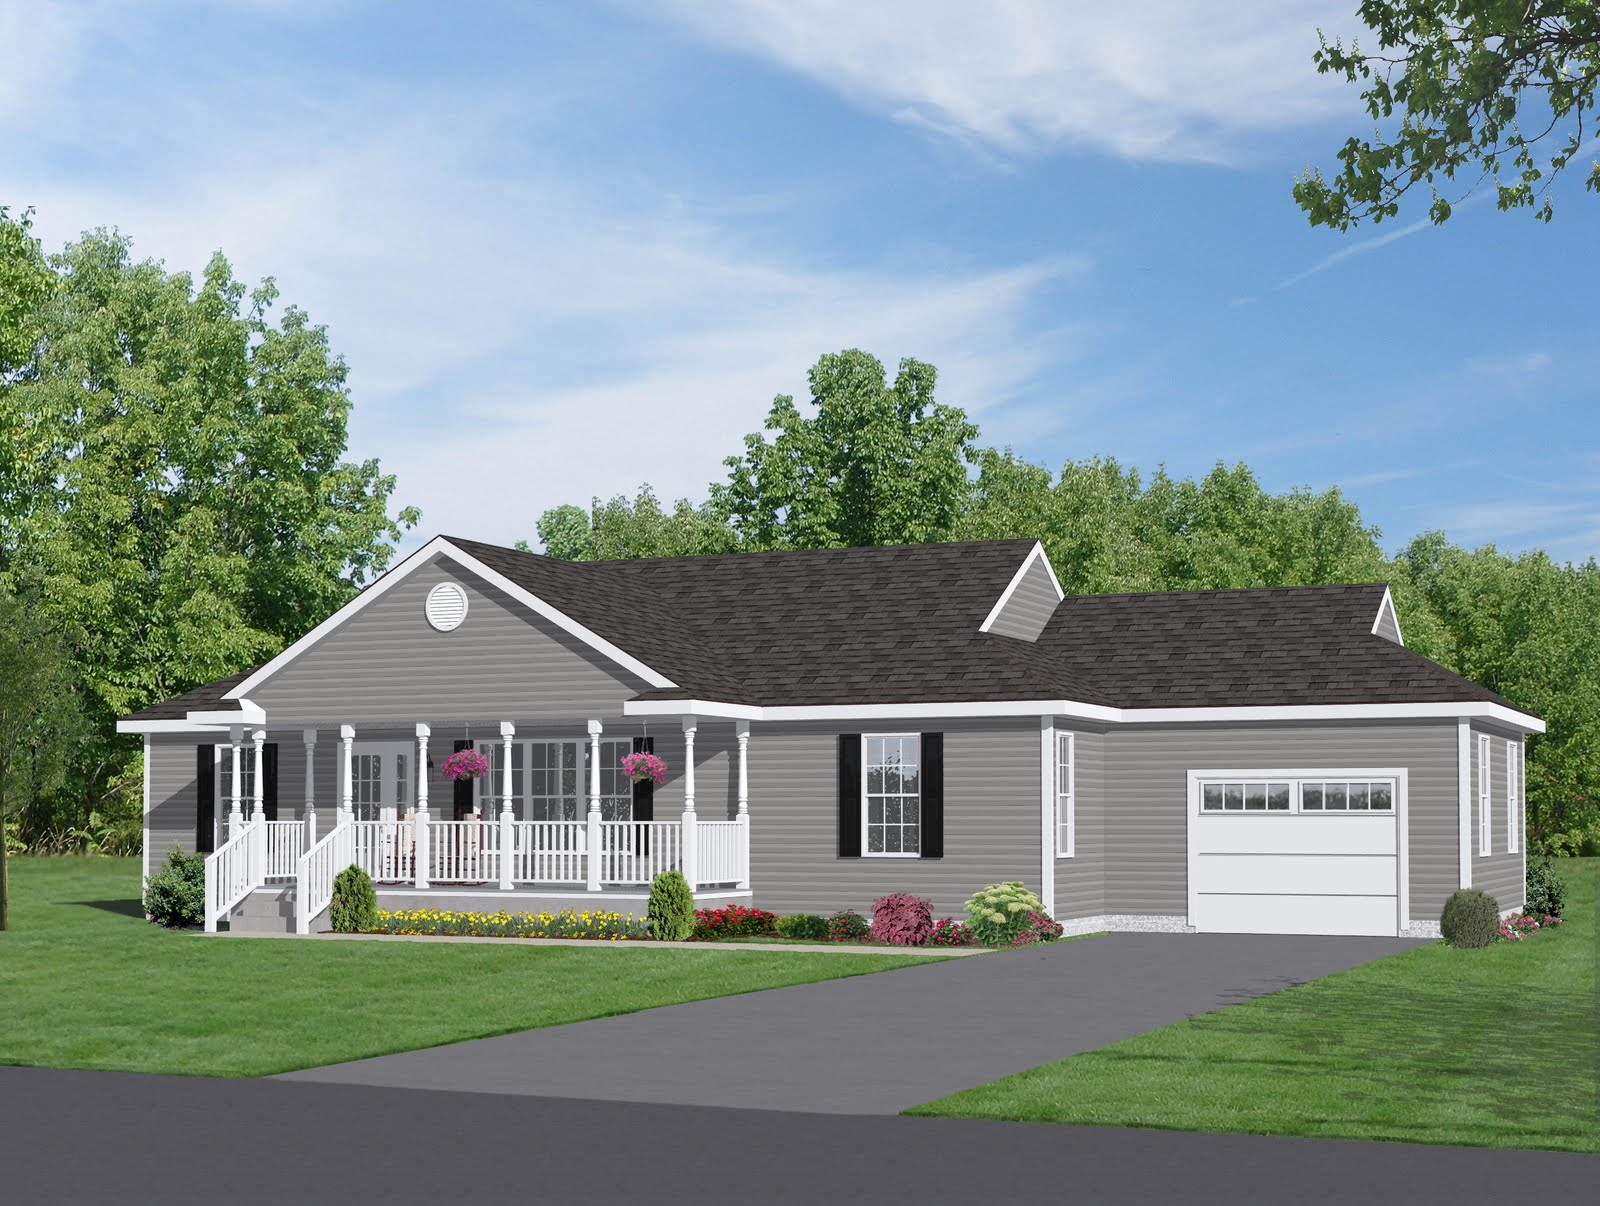 American Bungalow Style Home likewise RanchCapefloorplans in addition Houseplan055D 0171 moreover Tuscan House Plans likewise Bungalow Home Plans. on 1 story 4 bedroom ranch style homes plans